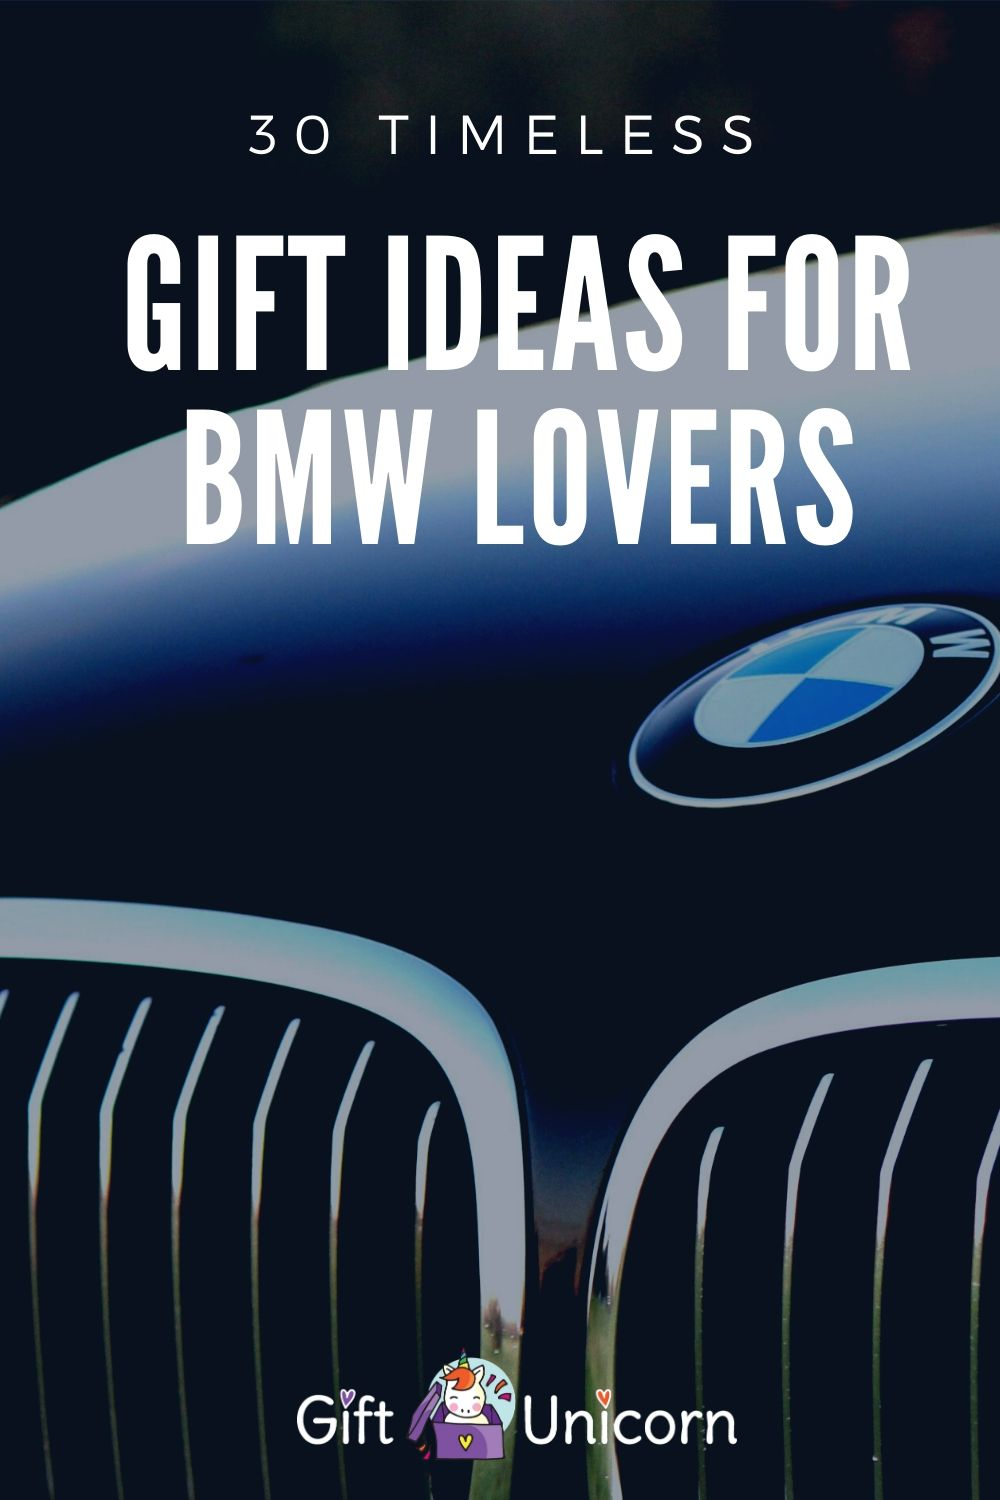 gift ideas for bmw lovers pin image